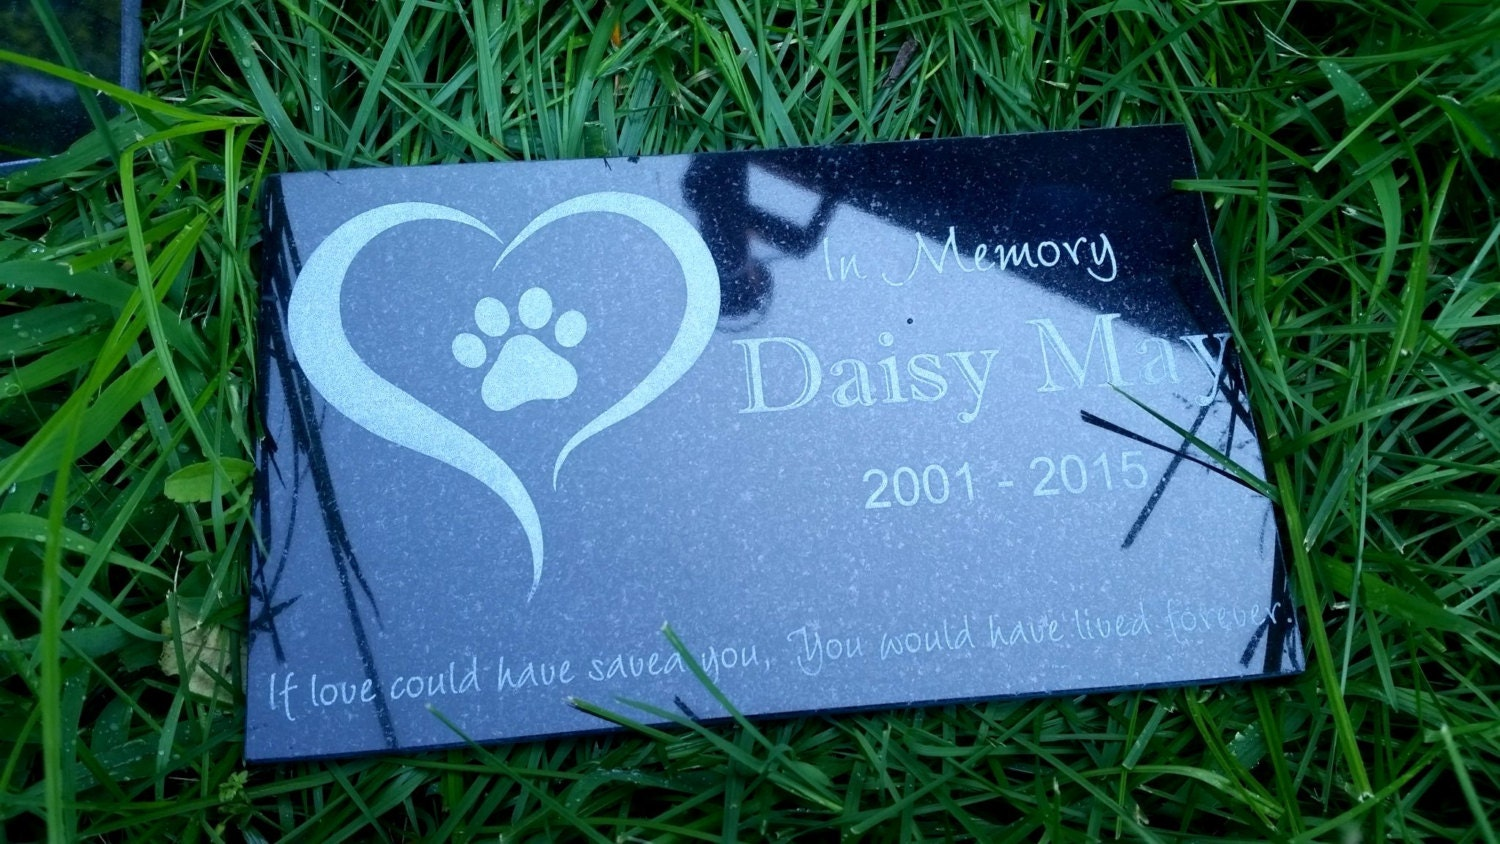 engraved shipping river address rocks stone pet gifts memorial garden free welcome personalized pin marker stones